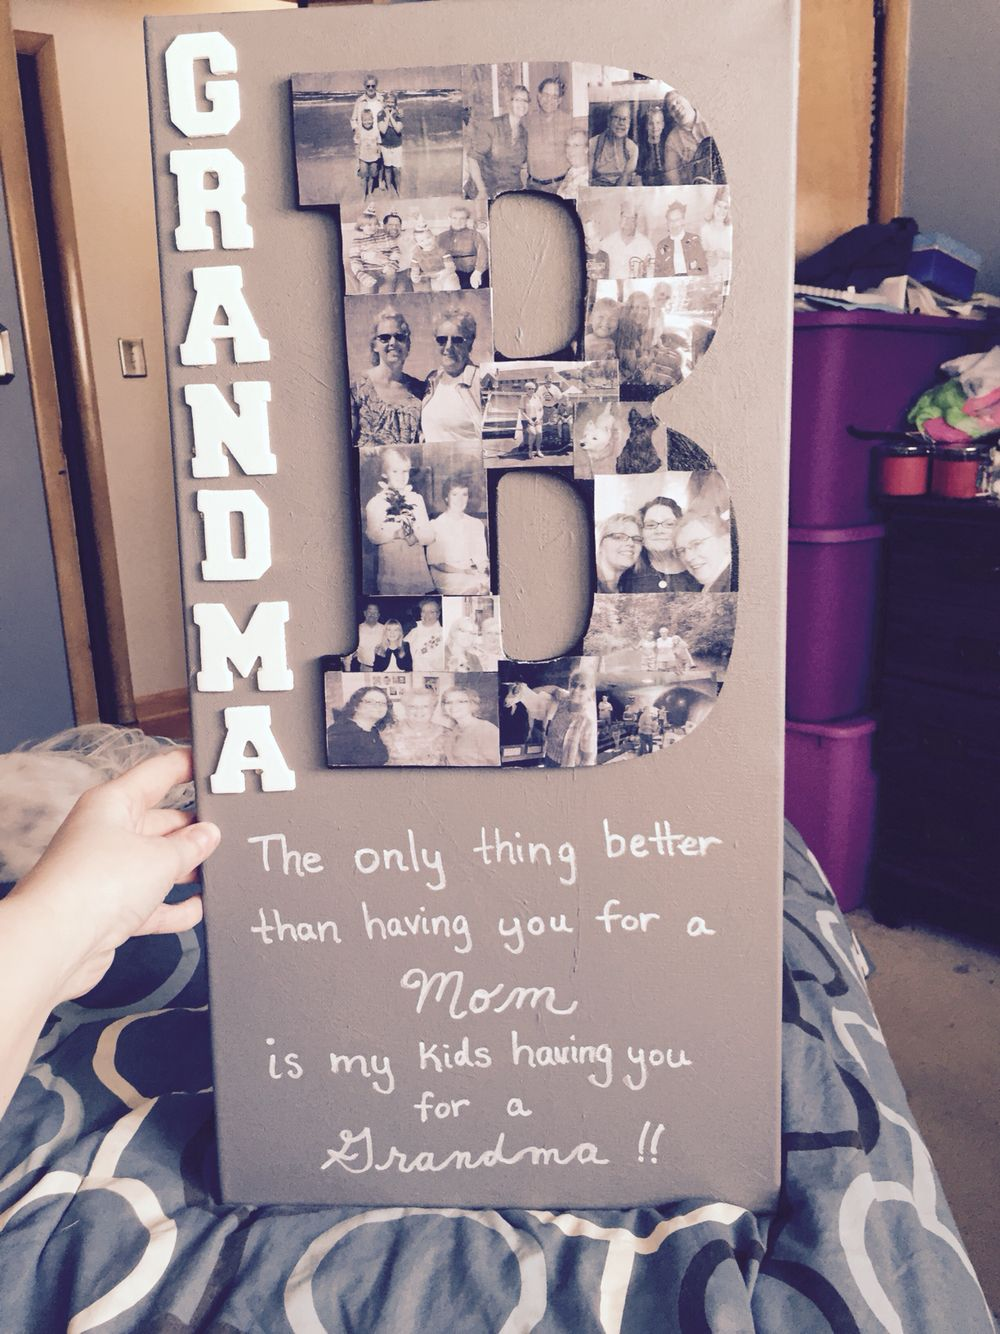 Bday present for Grandma. | Family Pic Display | Pinterest | Gift ...